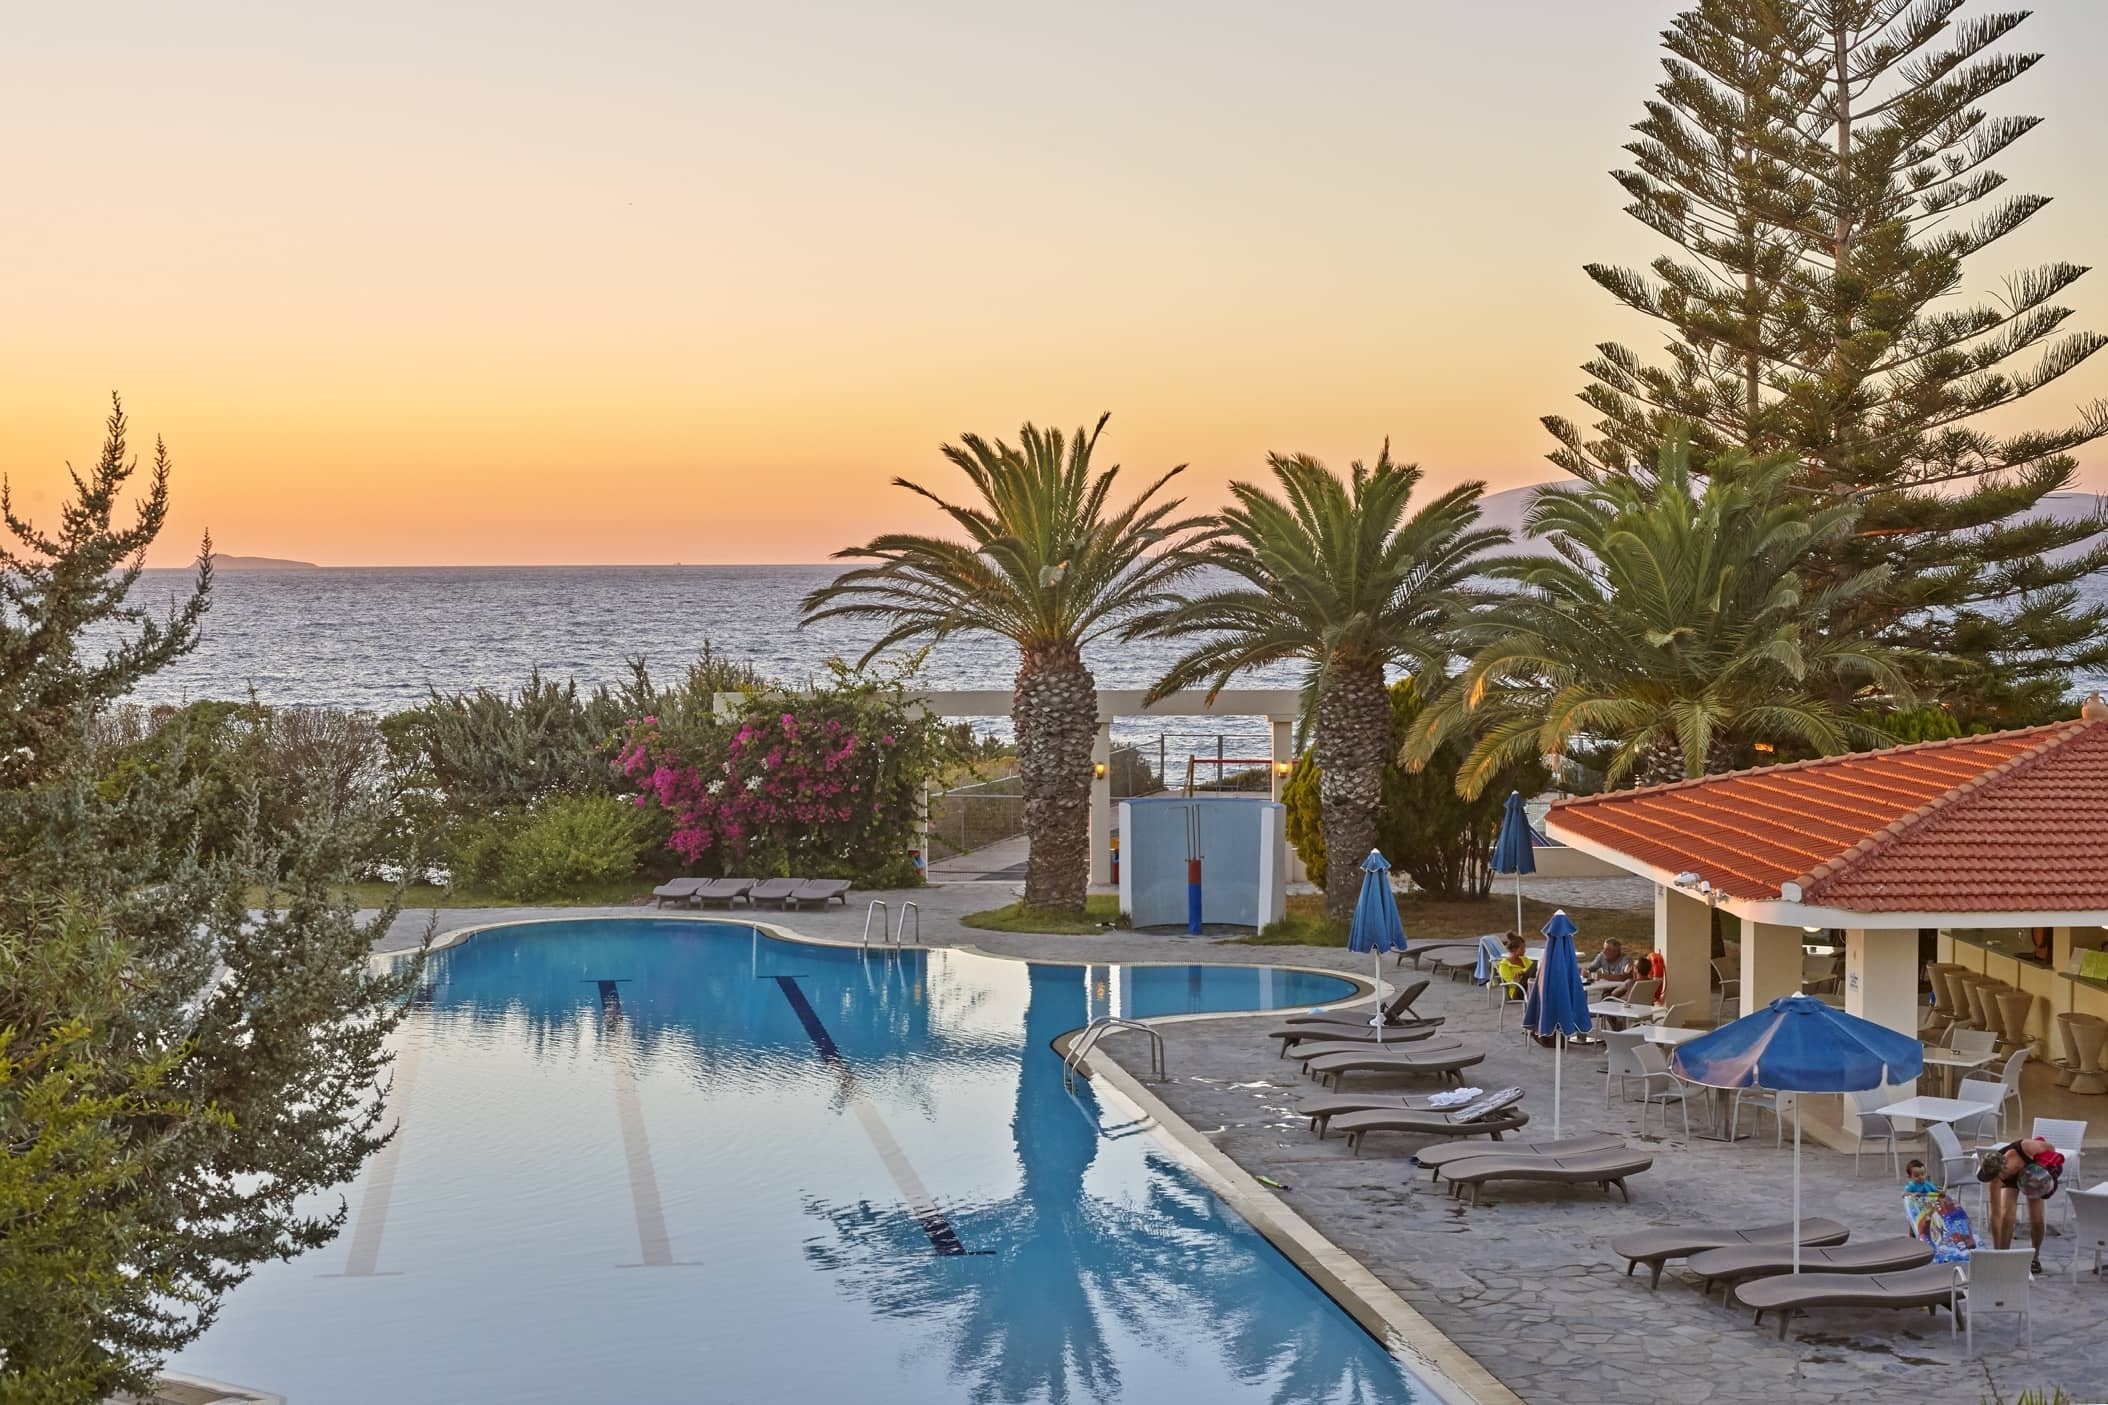 Ammos Resort - Κως ? -50% ? 6 Ημέρες (5 Διανυκτερεύσεις) ? 2 Άτομα ΚΑΙ 2 Παιδιά, ένα έως 14 ετών και ένα έως 3 ετών ? All Inclusive ? έως 12/07/2017 ? Δωρεάν Ξαπλώστρες και Ομπρέλες στην Πισίνα ή στην Ιδιωτική Παραλία!